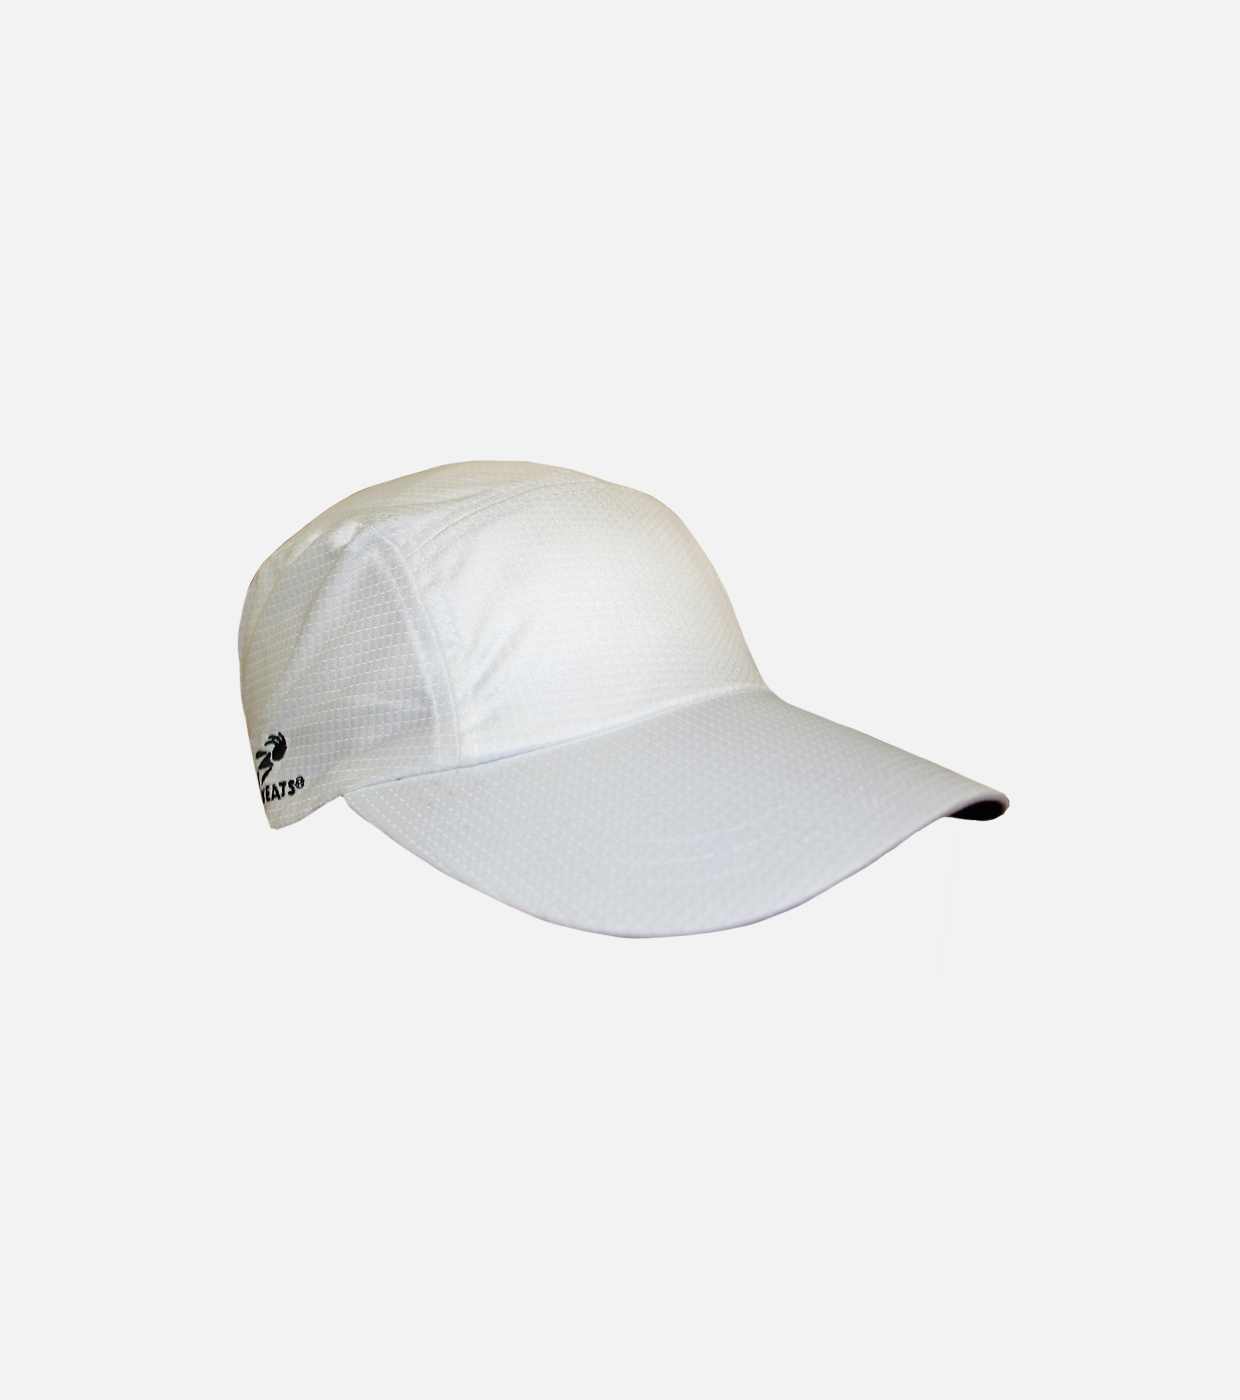 098394576c40b   Back To Shop. RS GRID Headsweats Hat